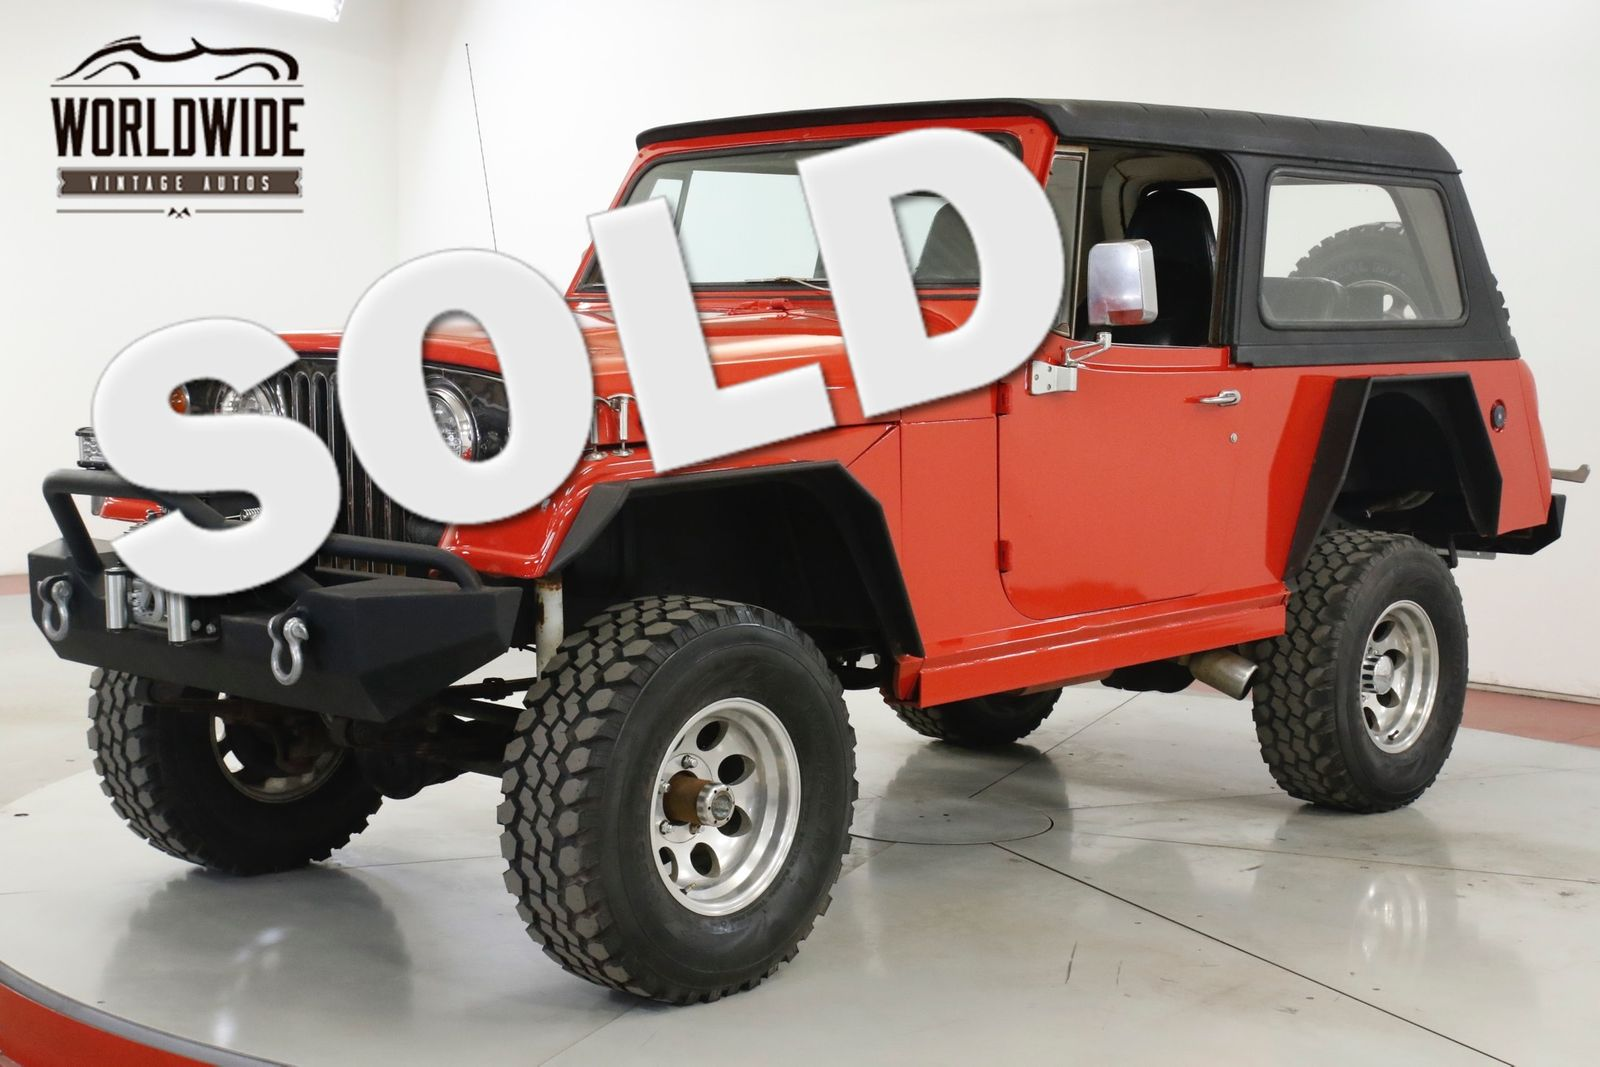 1968 JEEP COMMANDO JEEPSTER LIFTED WINCH HARDTOP AUTO NEW PAINT CALL 1-877-422-2940! FINANCING! WORLD WIDE SHIPPING. CONSIGNMENT. TRADES. FORD